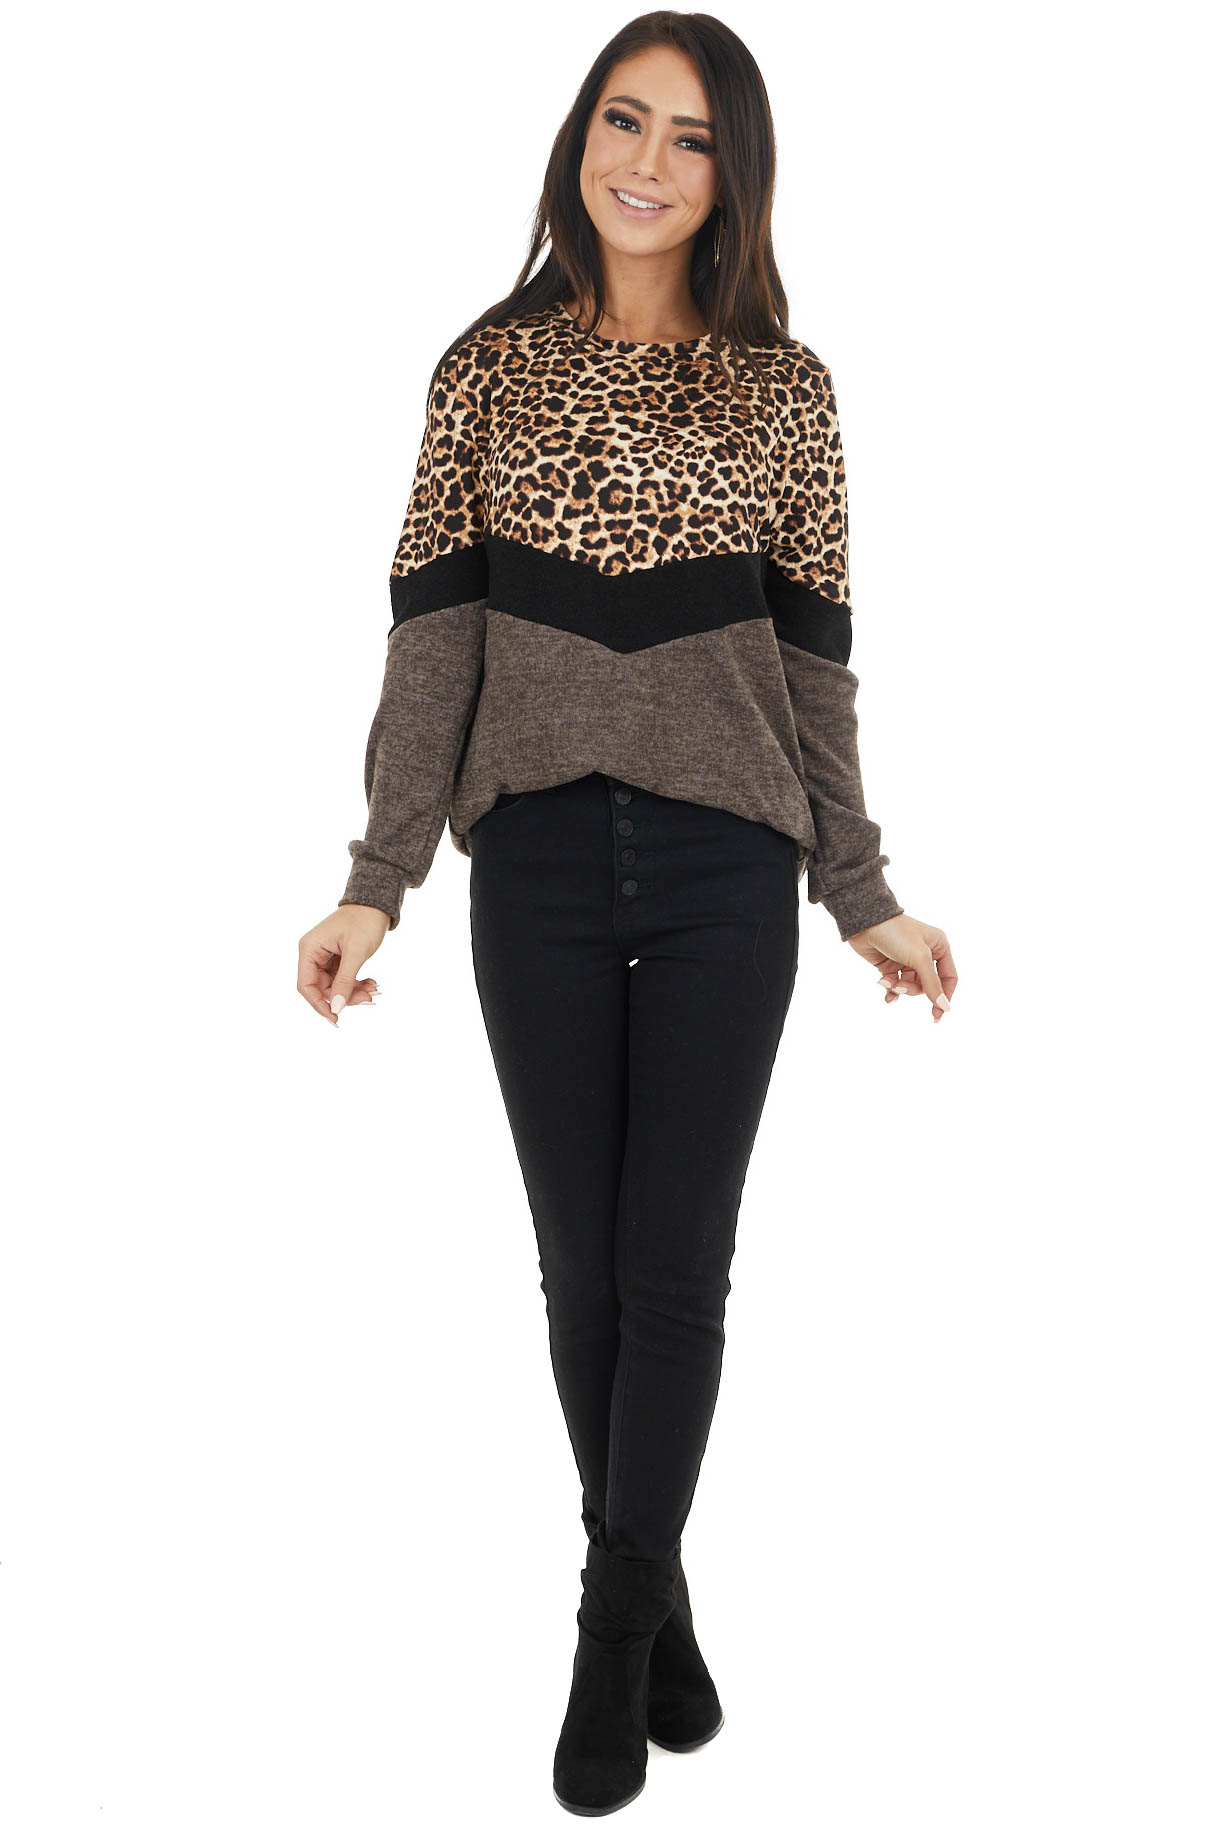 Cocoa and Leopard Print Colorblock Long Sleeve Top